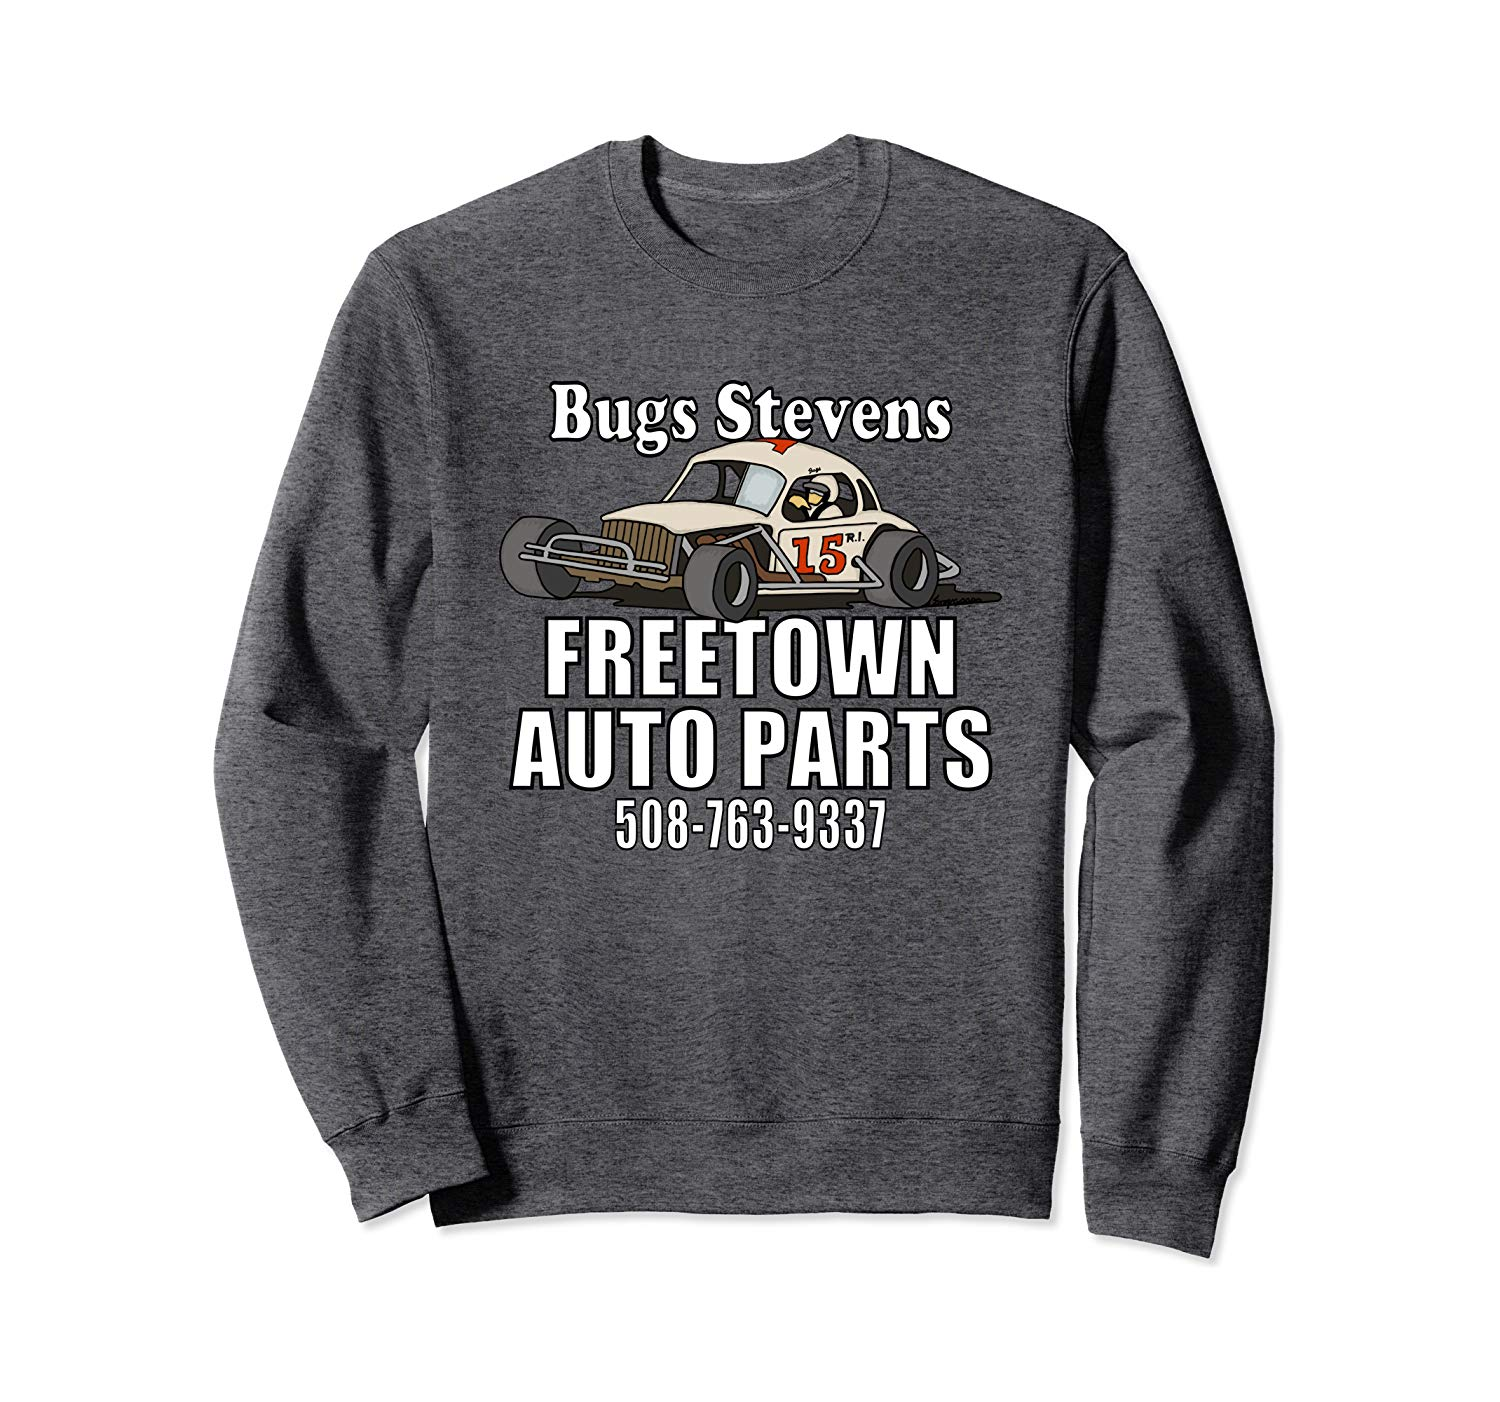 BUGS STEVENS FREETOWN AUTO PARTS  Sweatshirt